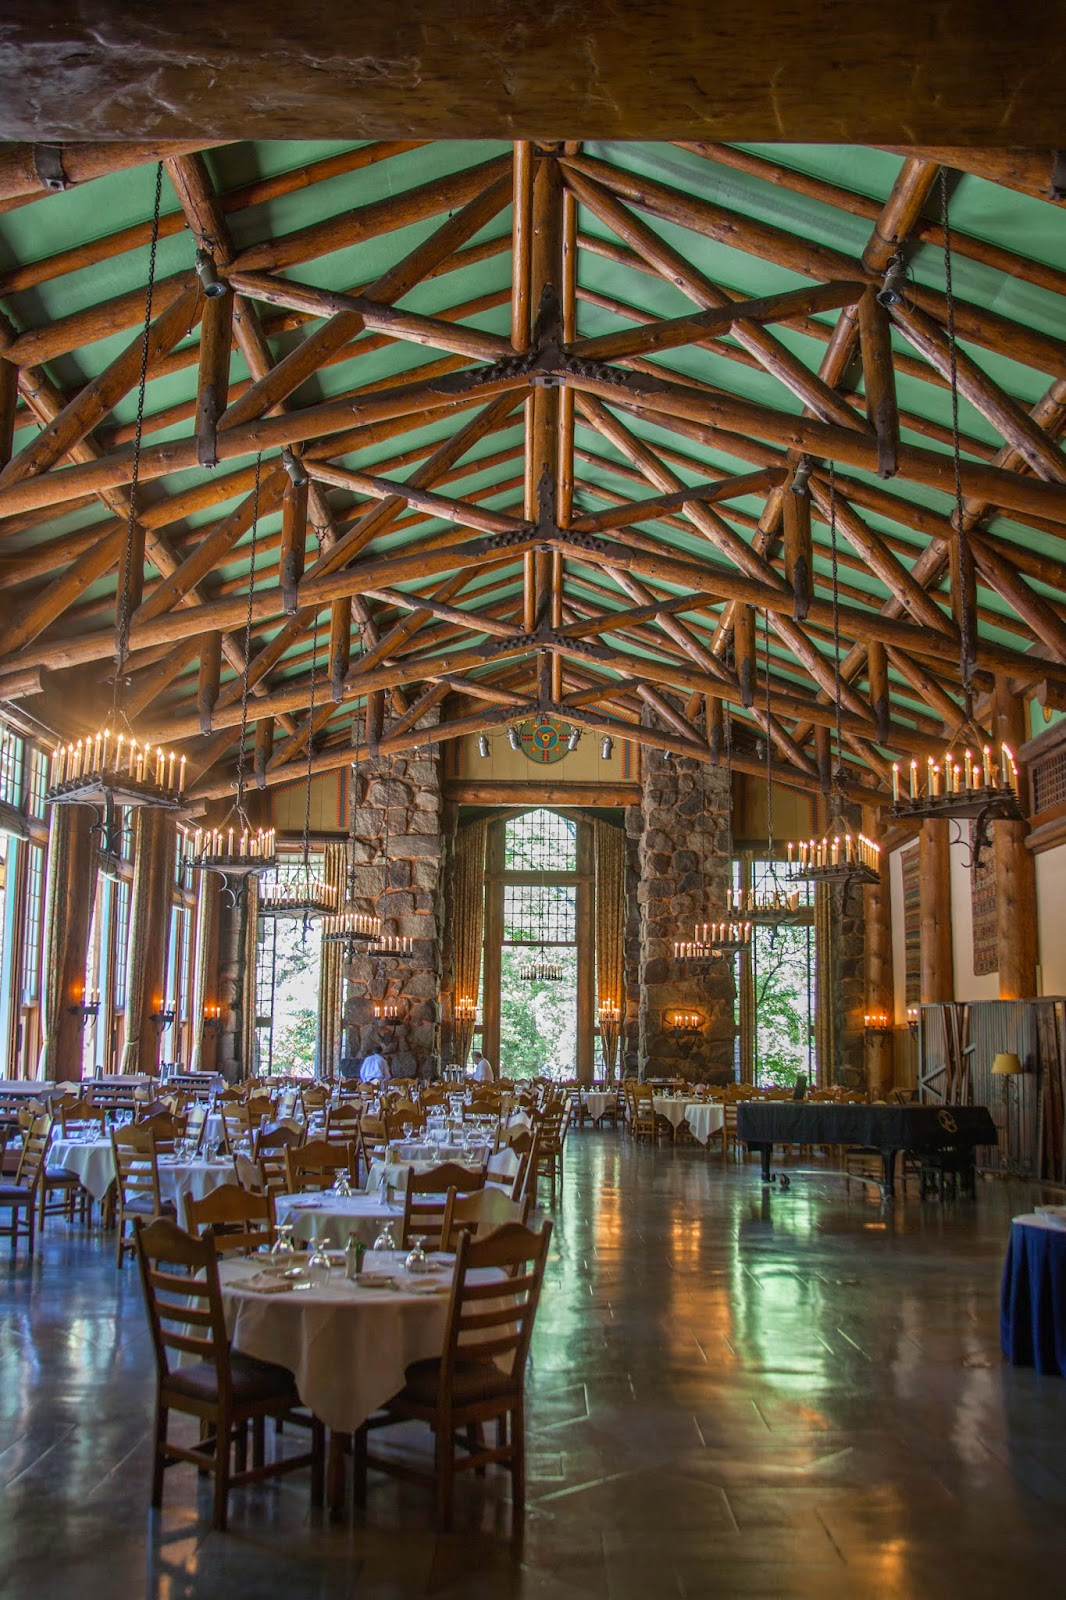 ahwahnee hotel dining room. The Dining Room Was Exquisite. It A Beautiful Sight All Lit Up For Dinner, Every Table Had Single Long Candle As Center Piece. Ahwahnee Hotel